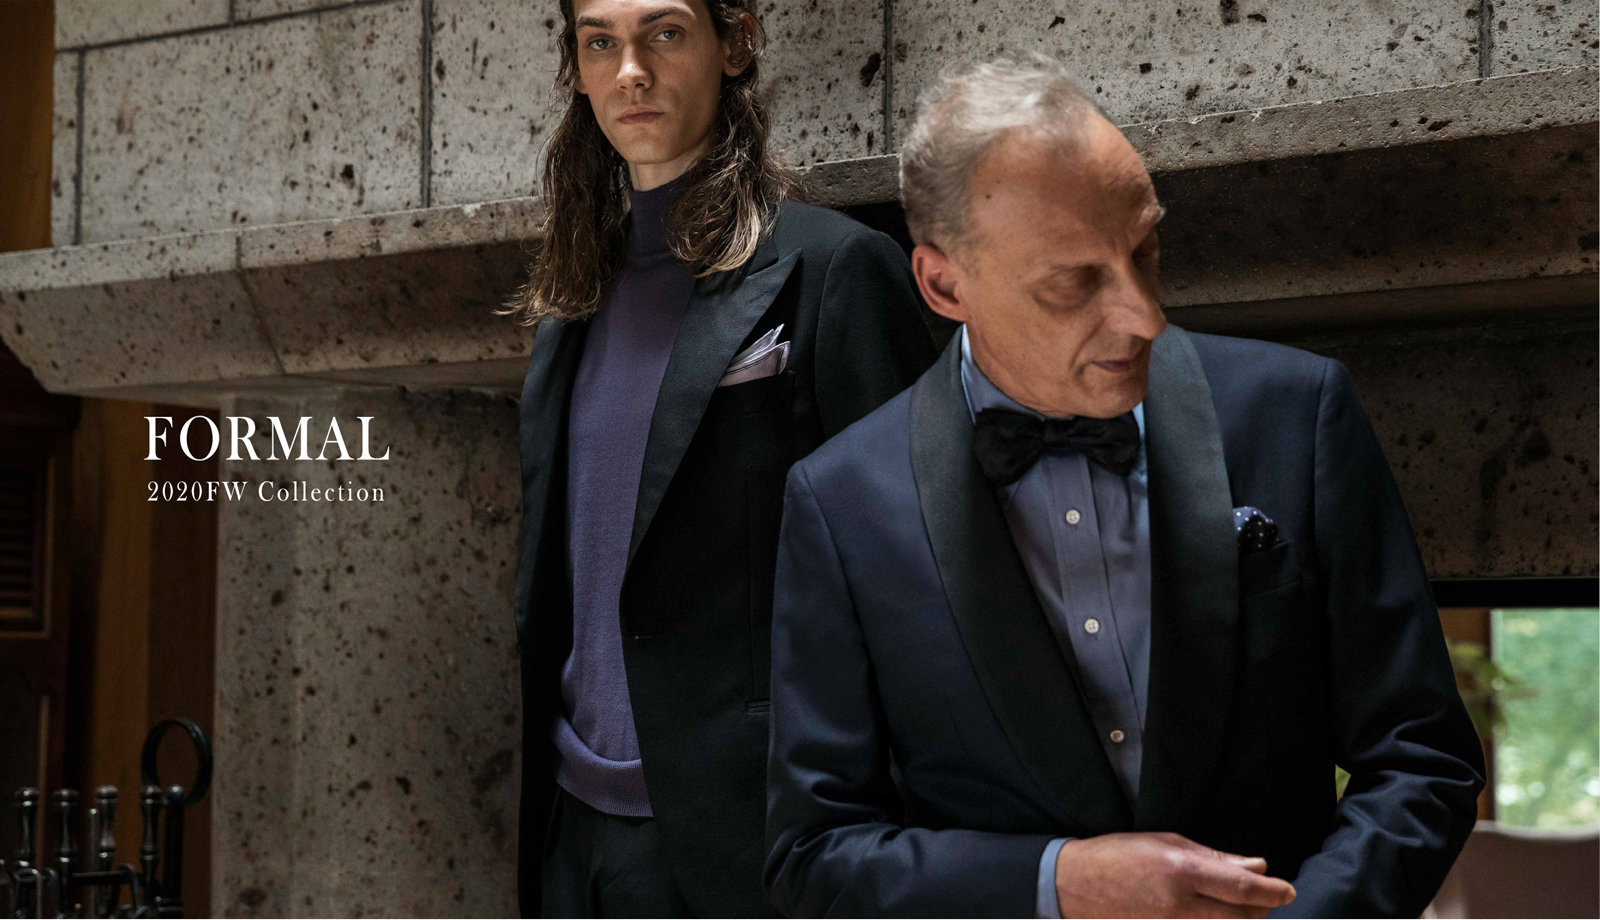 FORMAL 2020FW Collection